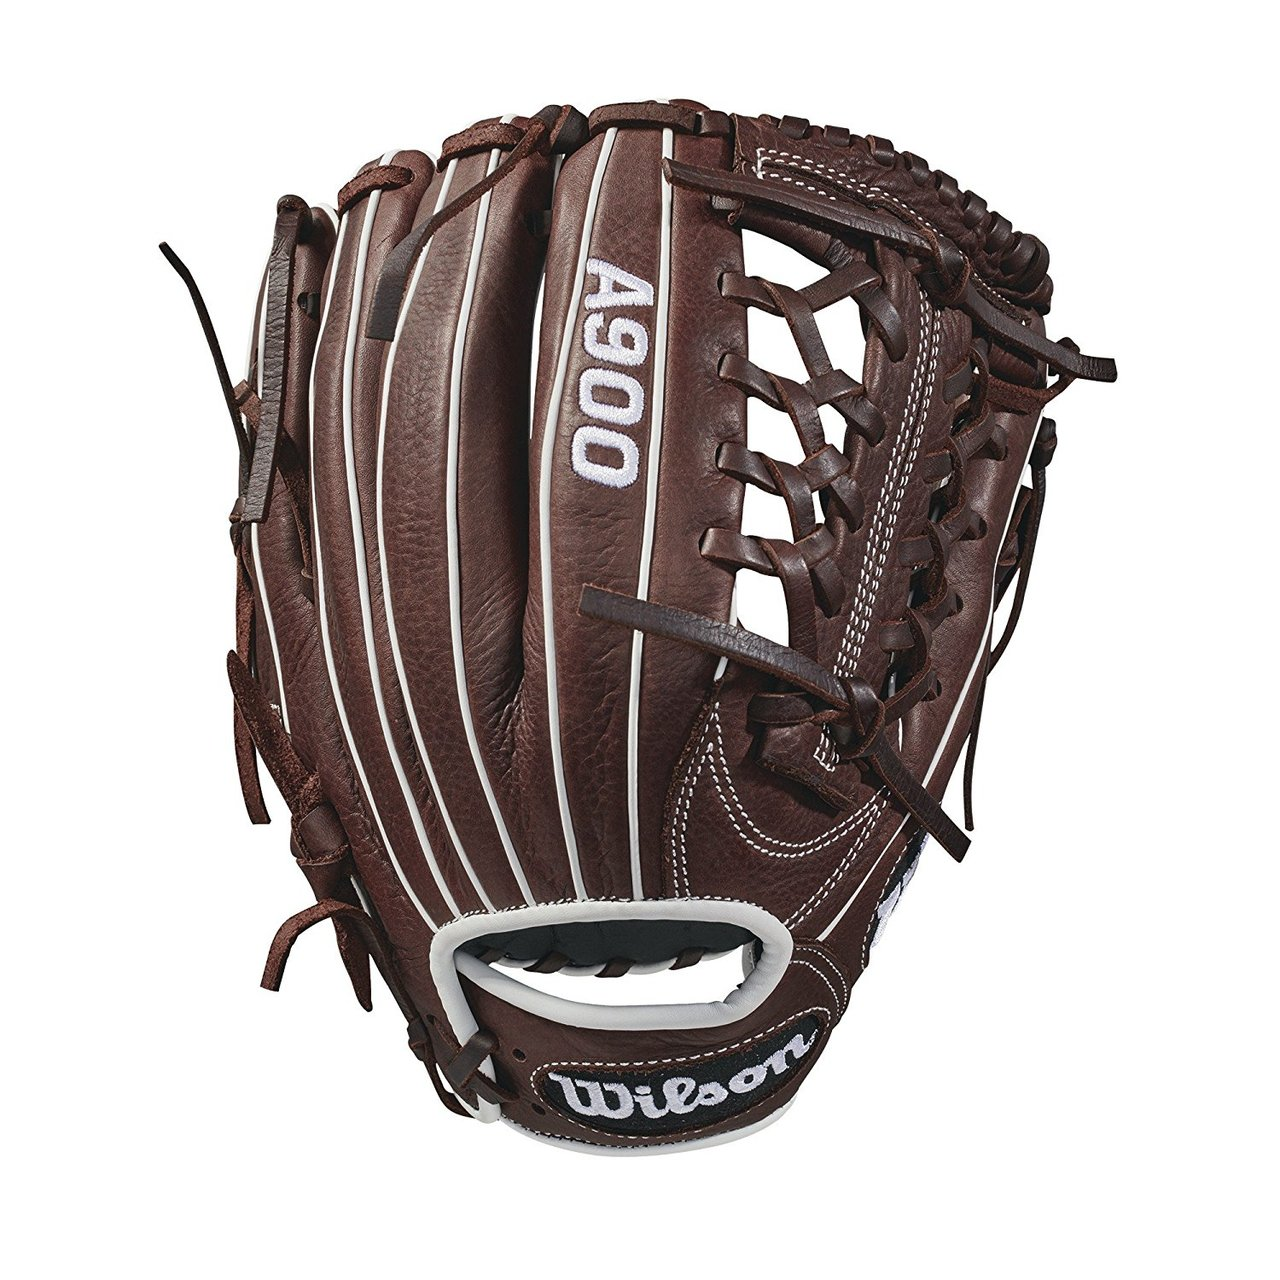 wilson-2018-a900-baseball-glove-11-75-right-hand-throw WTA09RB181175-RightHandThrow Wilson 887768593902 Wilson youth baseball gloves are intended for a younger more advanced